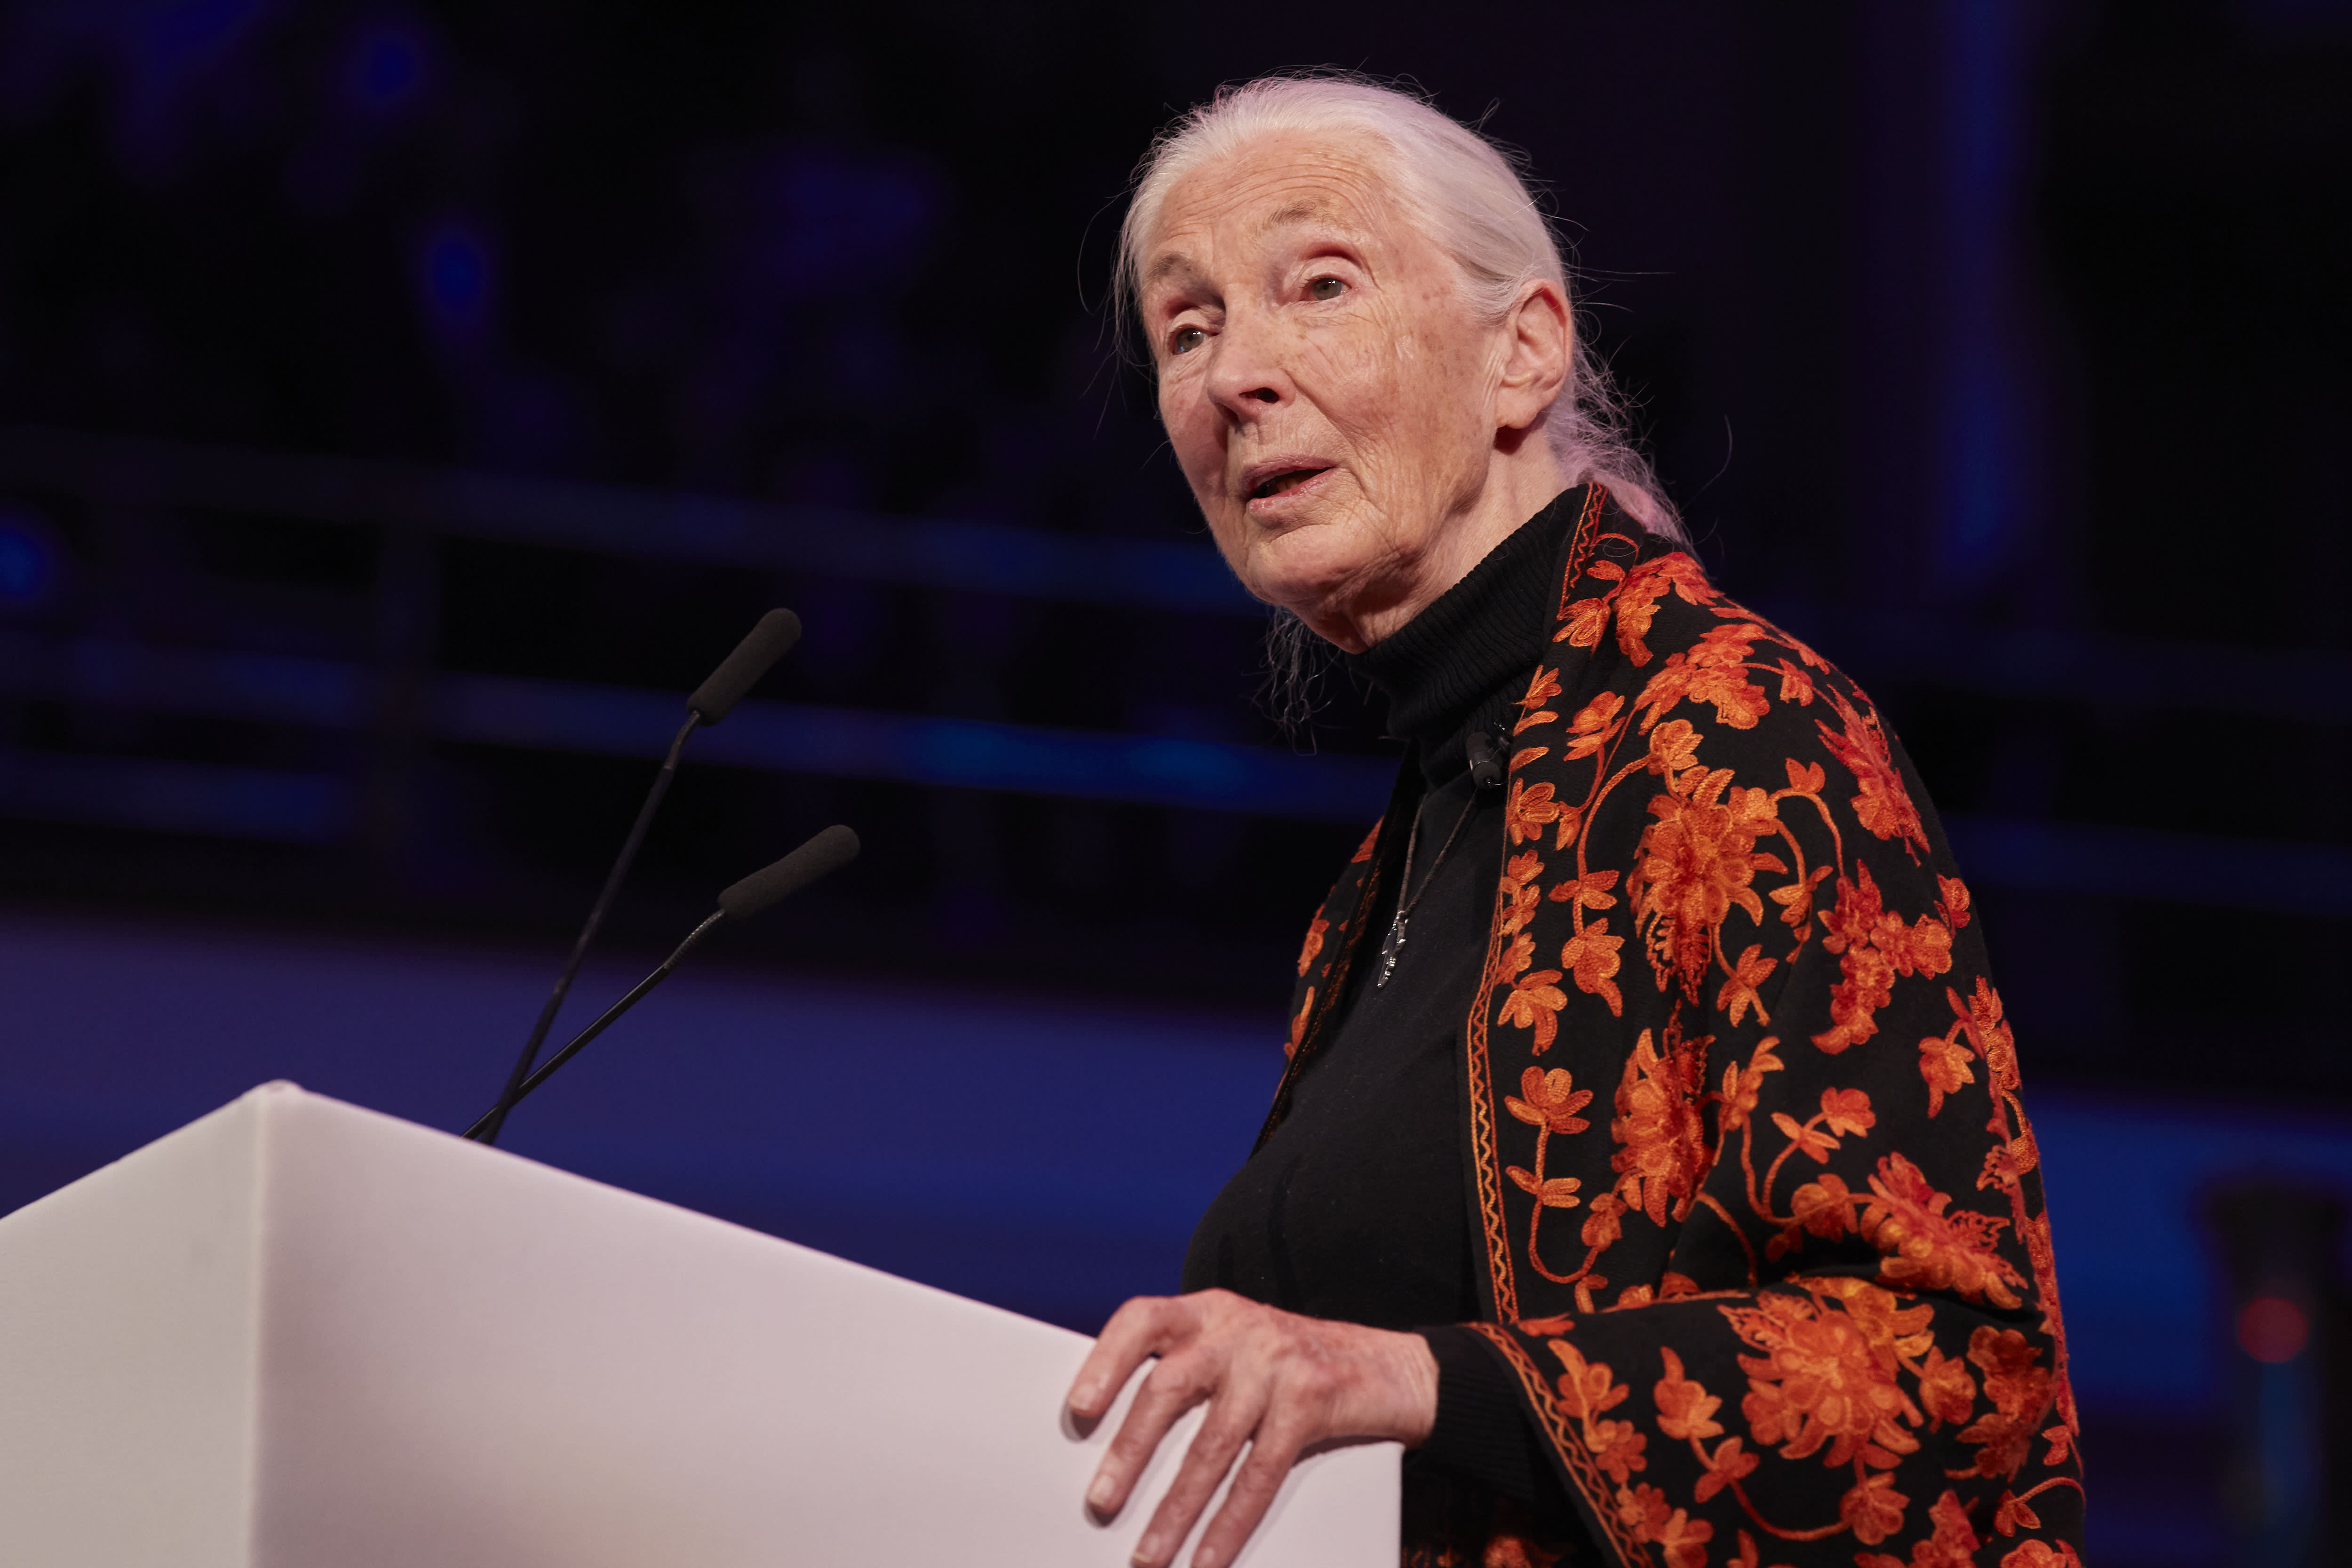 Jane Goodall was told she was 'just a girl.' But grew up to redefine mankind